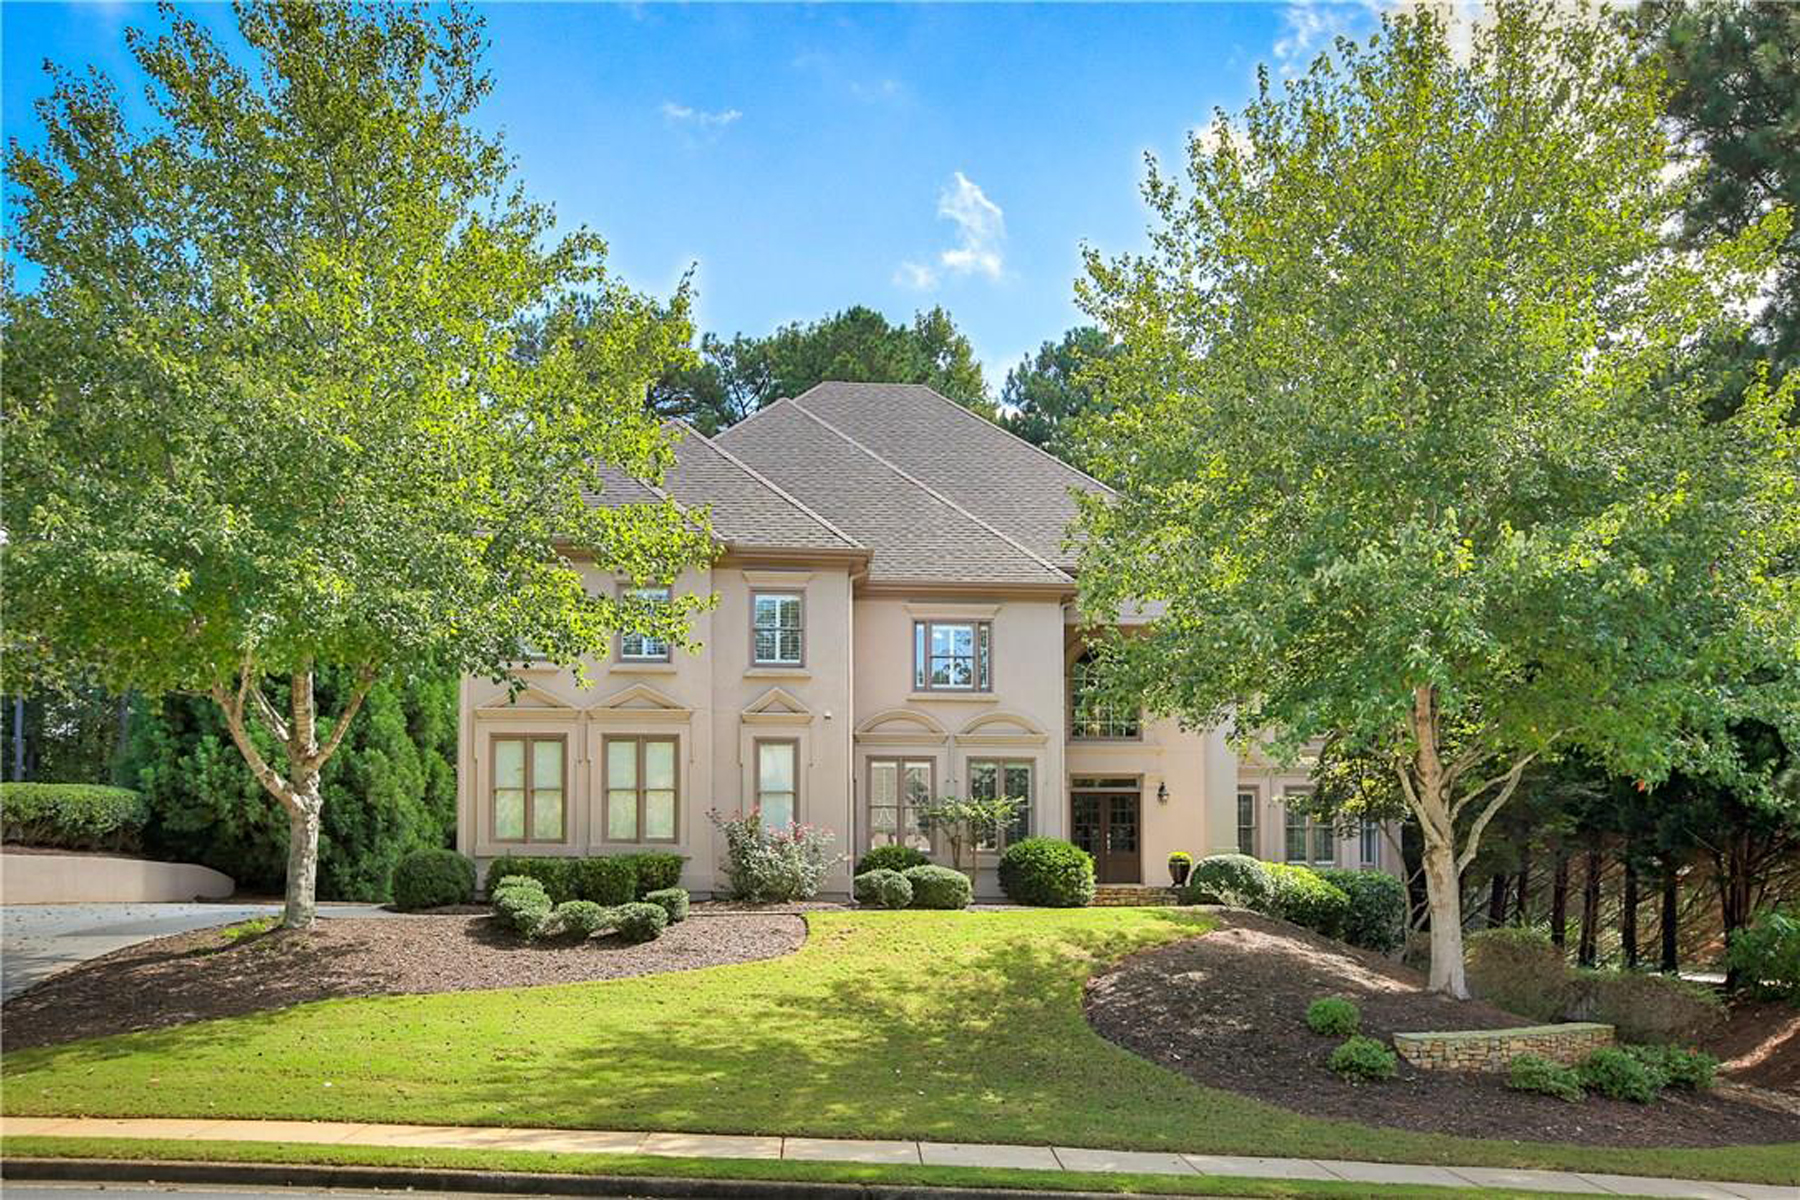 Single Family Home for Sale at Better Than New, A Perfect 10 3010 Greatwood Crossing Alpharetta, Georgia 30005 United States